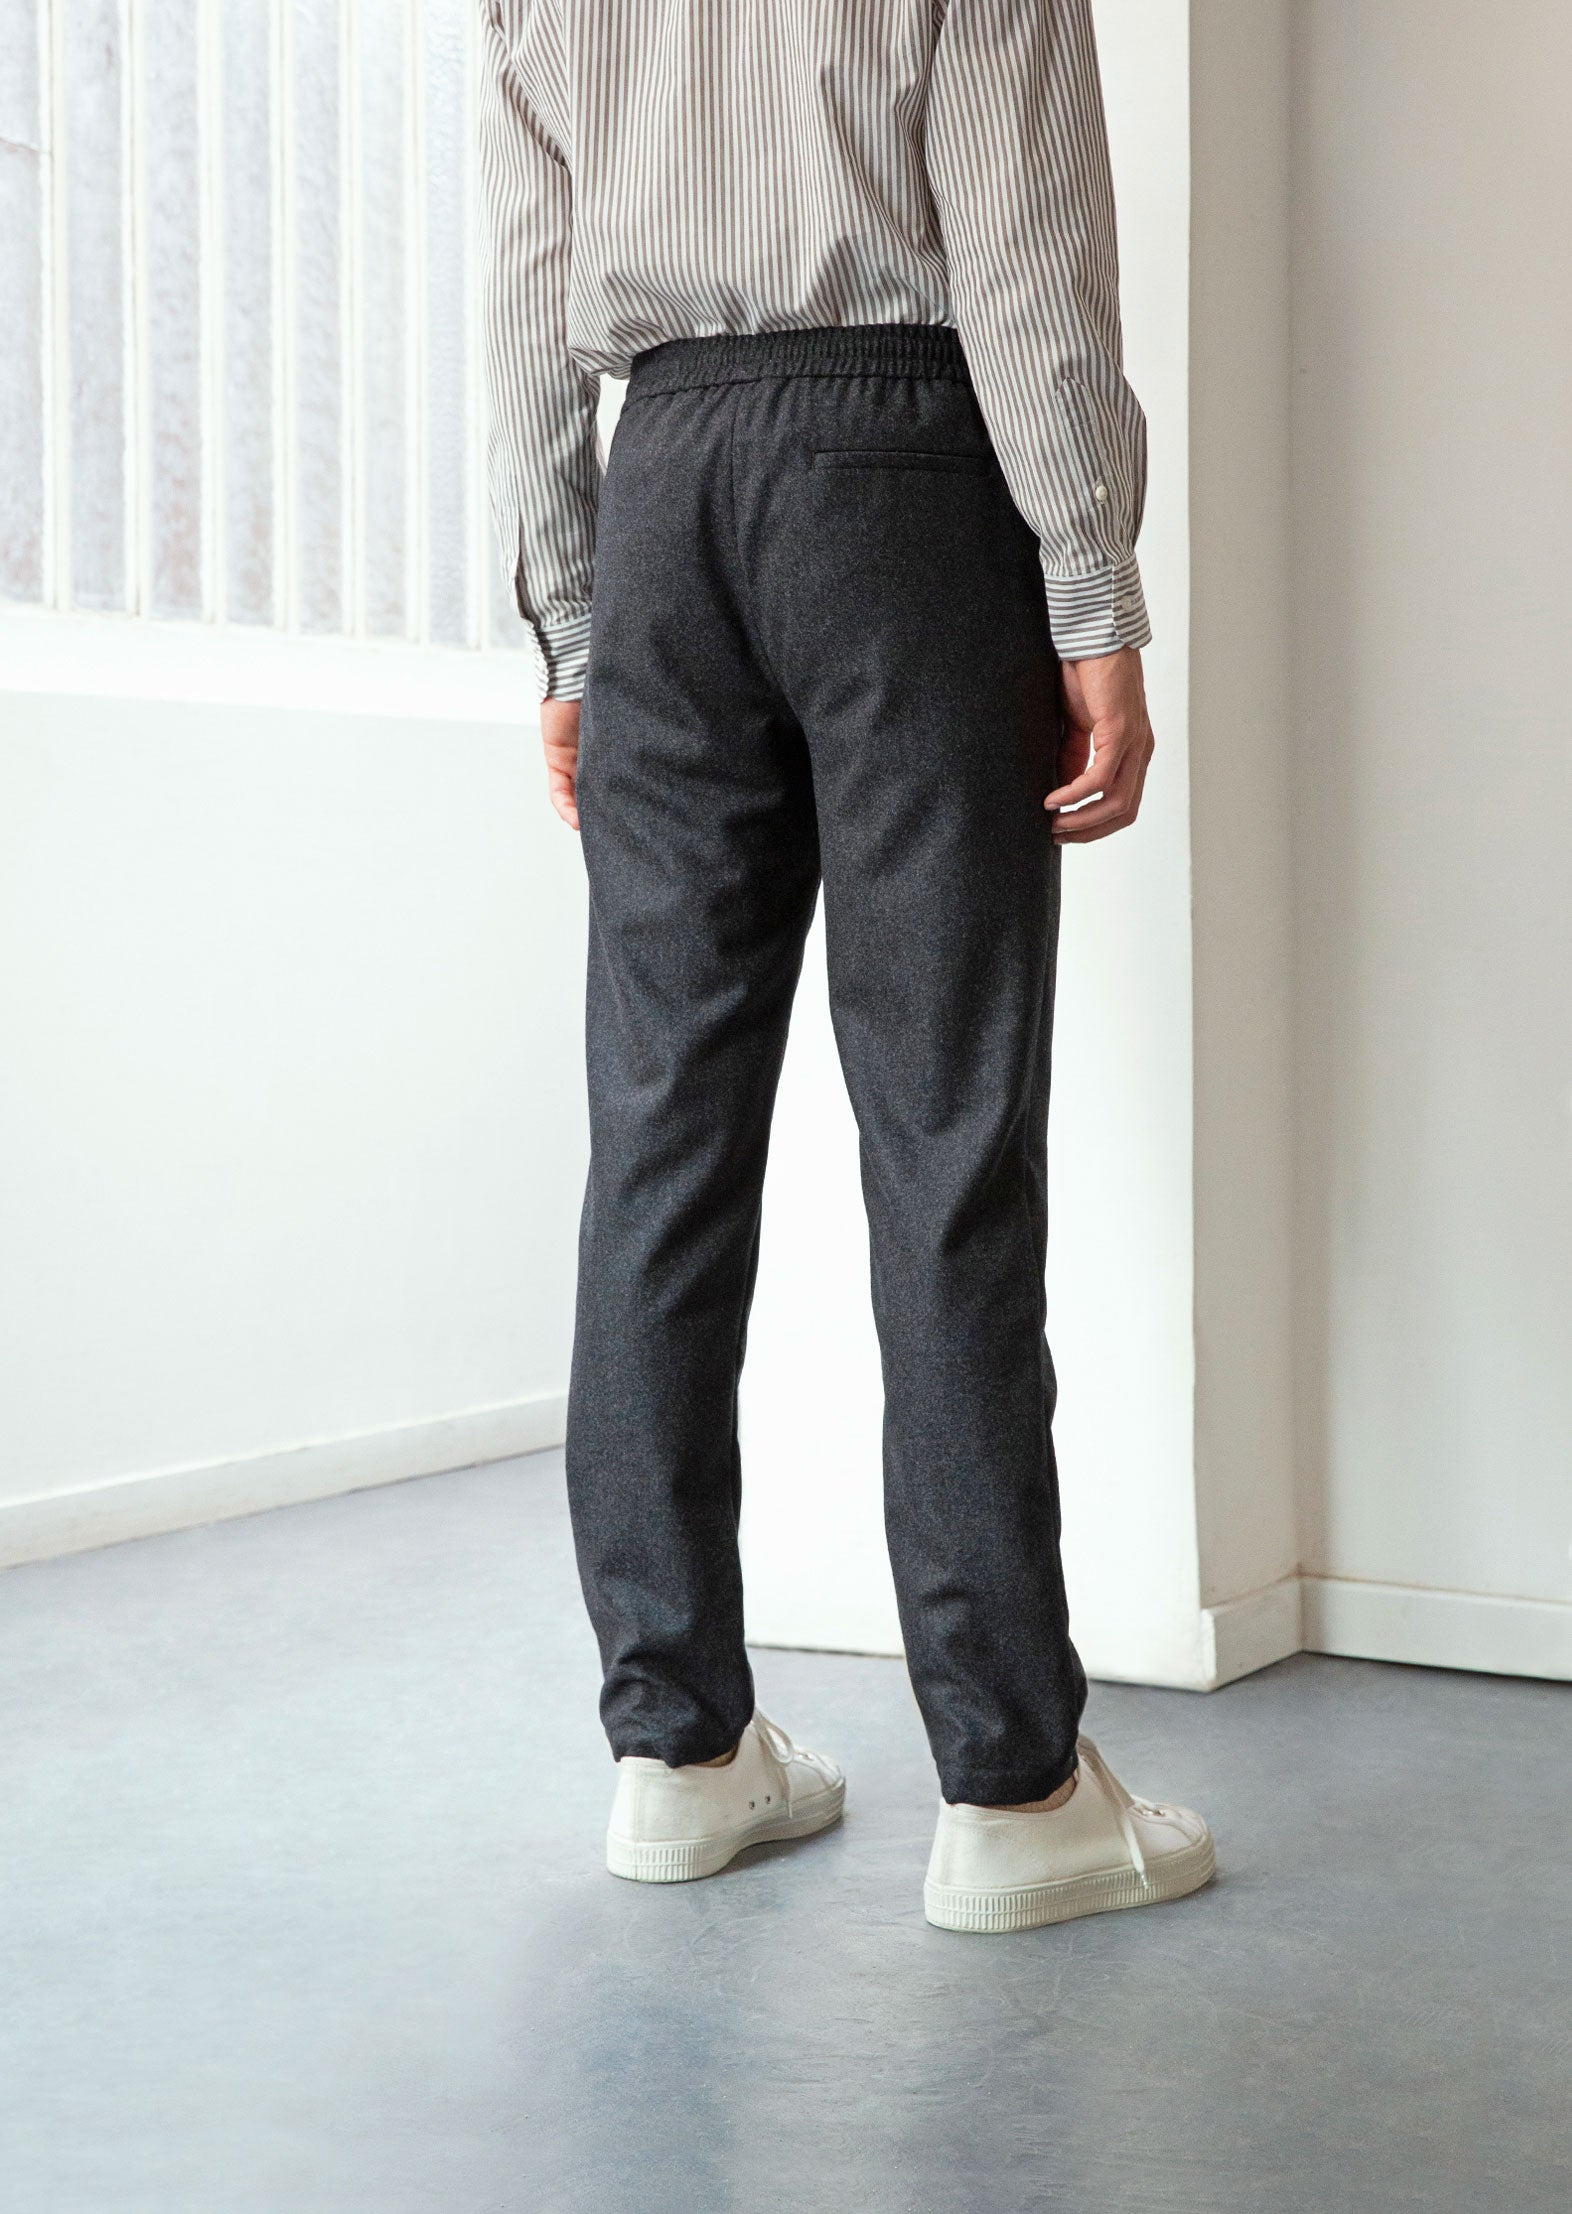 Relaxed trousers charcoal - Italian wool flannel - Charcoal